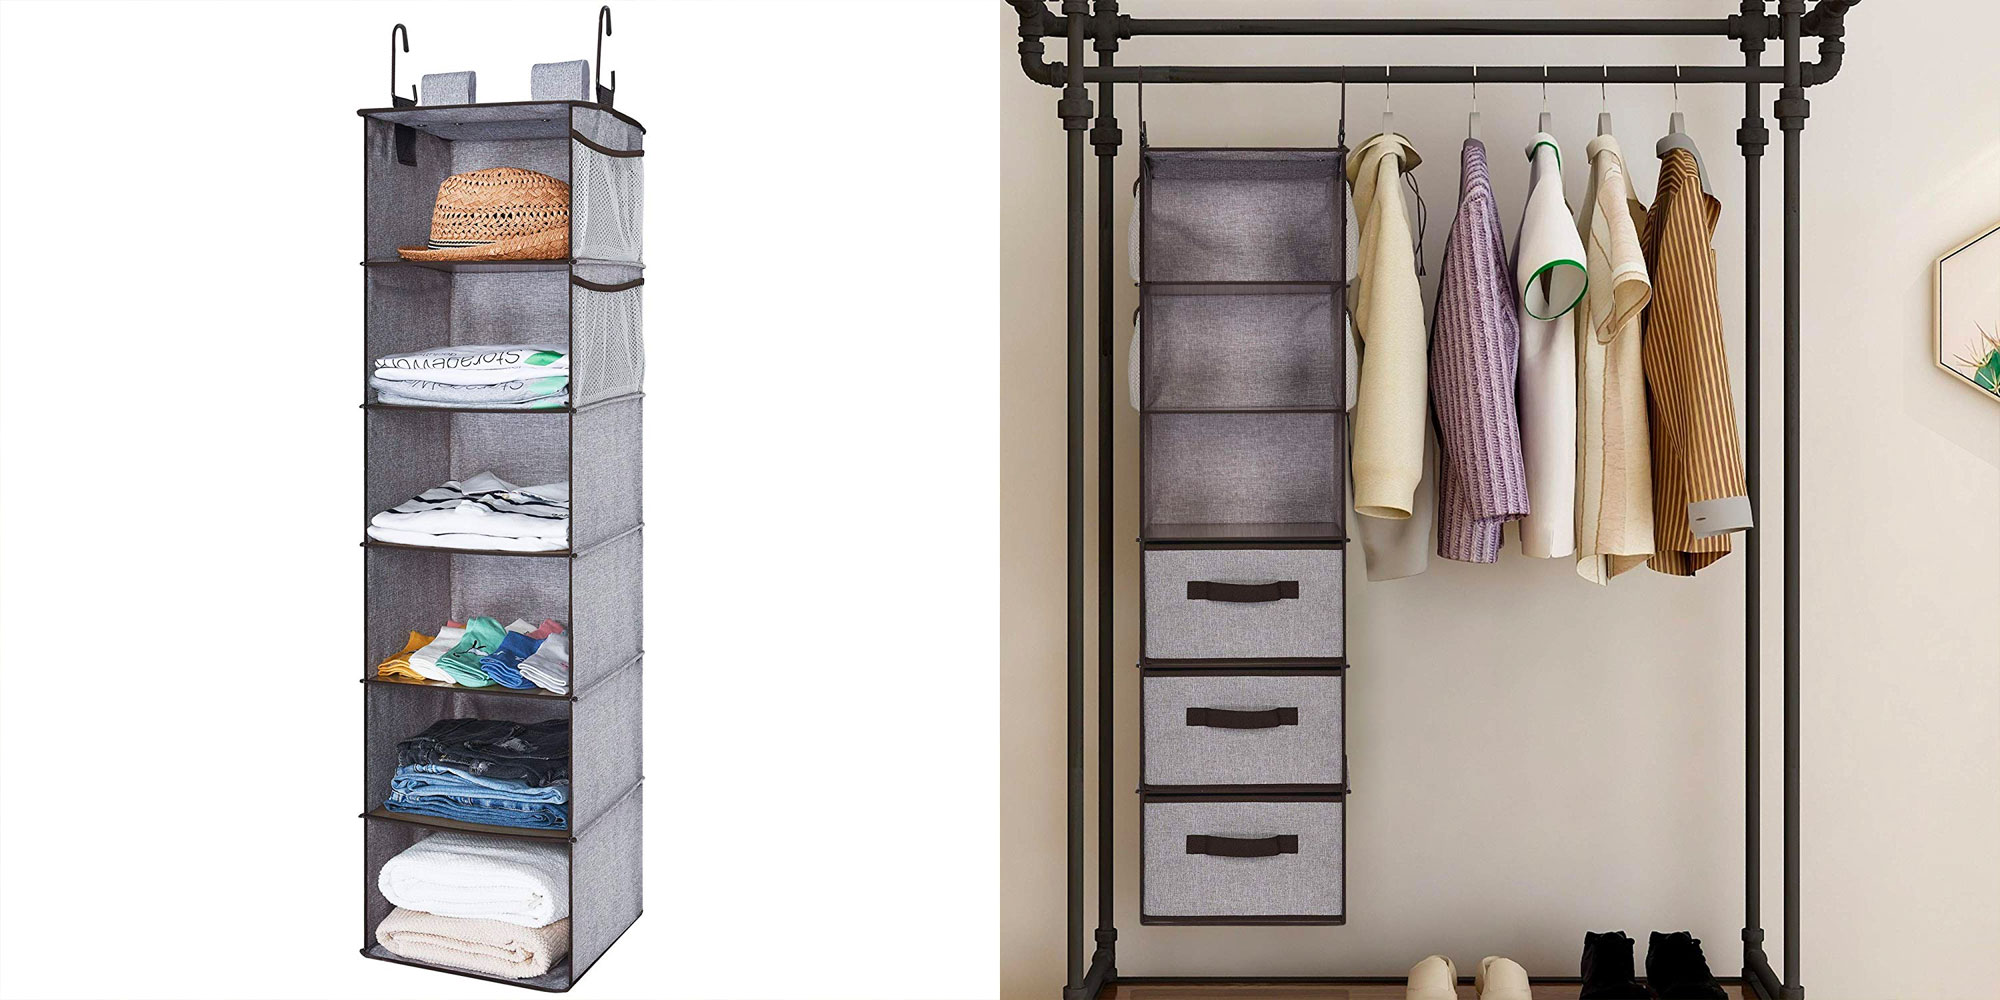 It's never to late to start spring cleaning w/ this hanging closet organizer for $13.50 Prime shipped